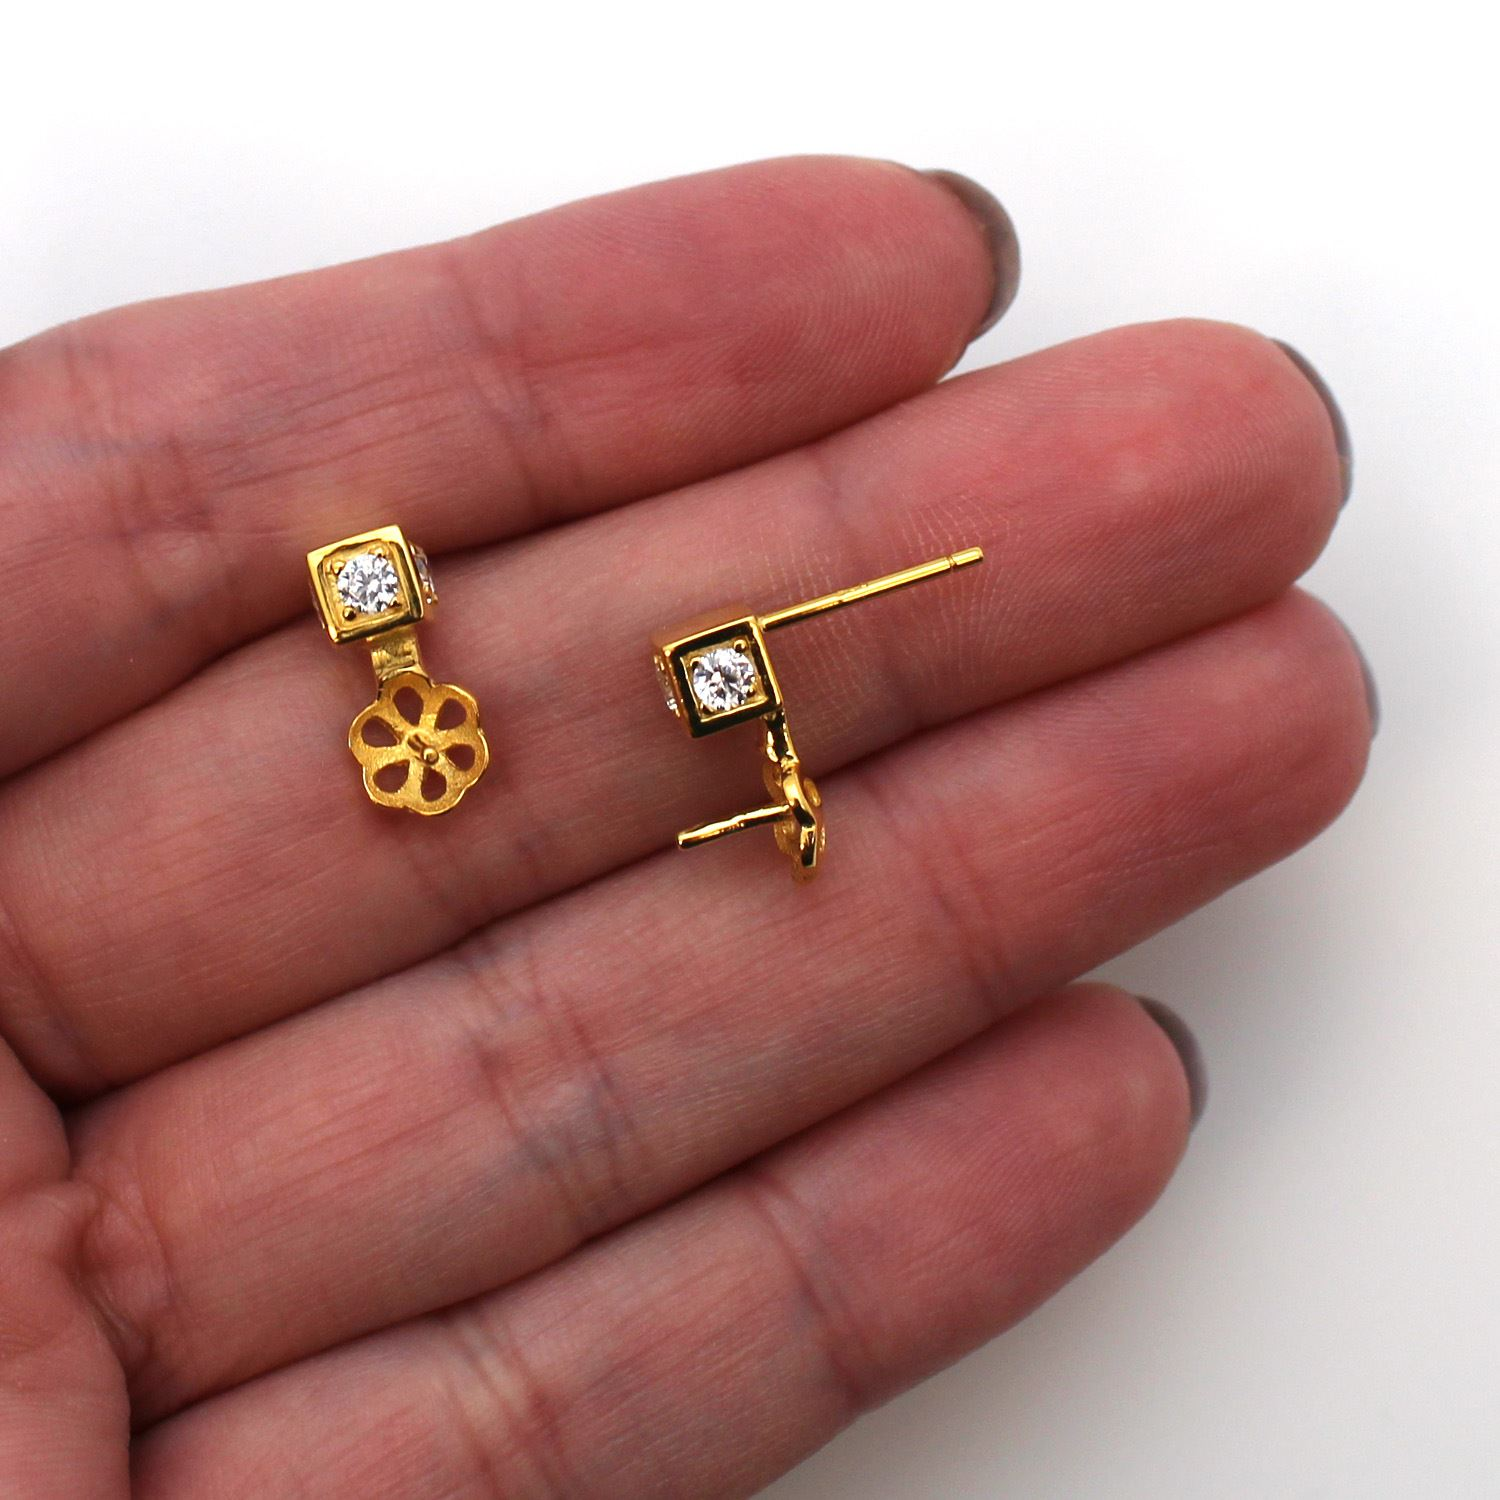 Gold Plated Sterling Silver Earring Findings, Square CZ Stone Stud with Pearl Cup and Peg, Bridal Earrings (1 pair)